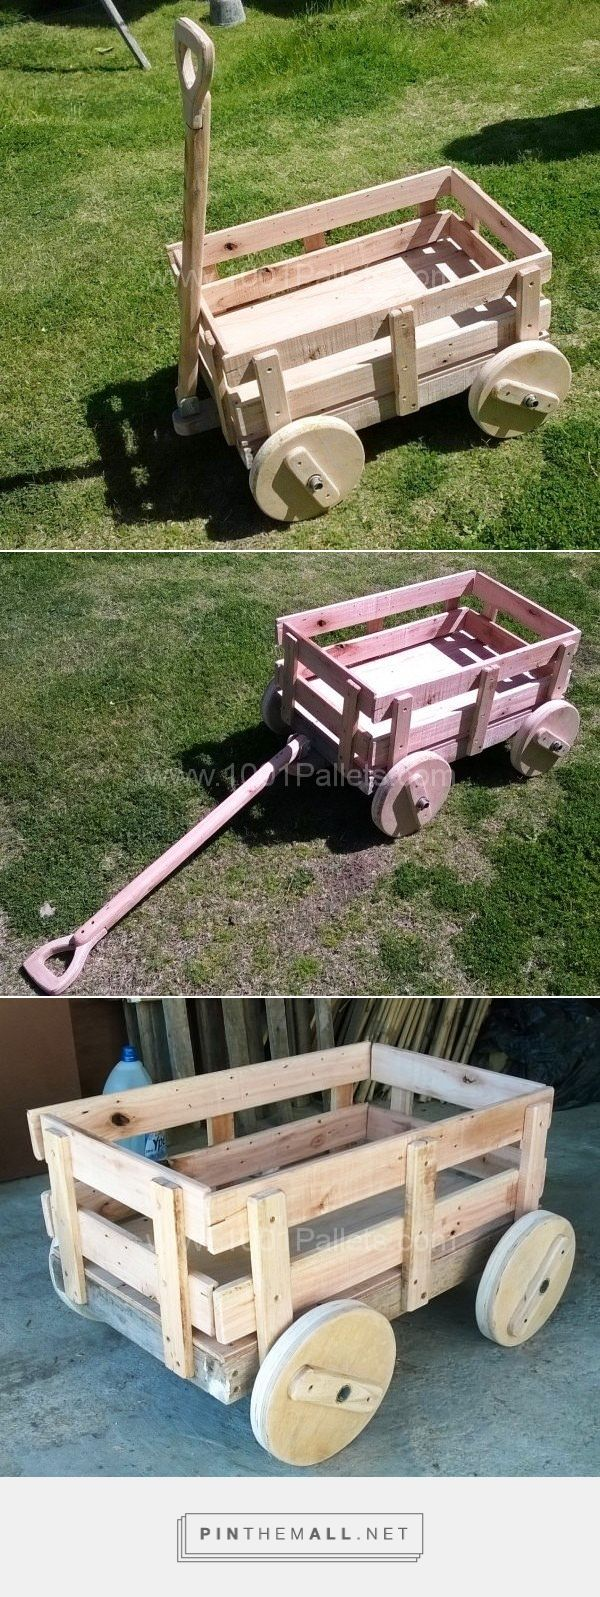 1001 pallets pallet kids playground here is a home made playground - It Is A Cart For Playground Made With Pallet Wood Axes Iron Pipe And Wooden Wheels